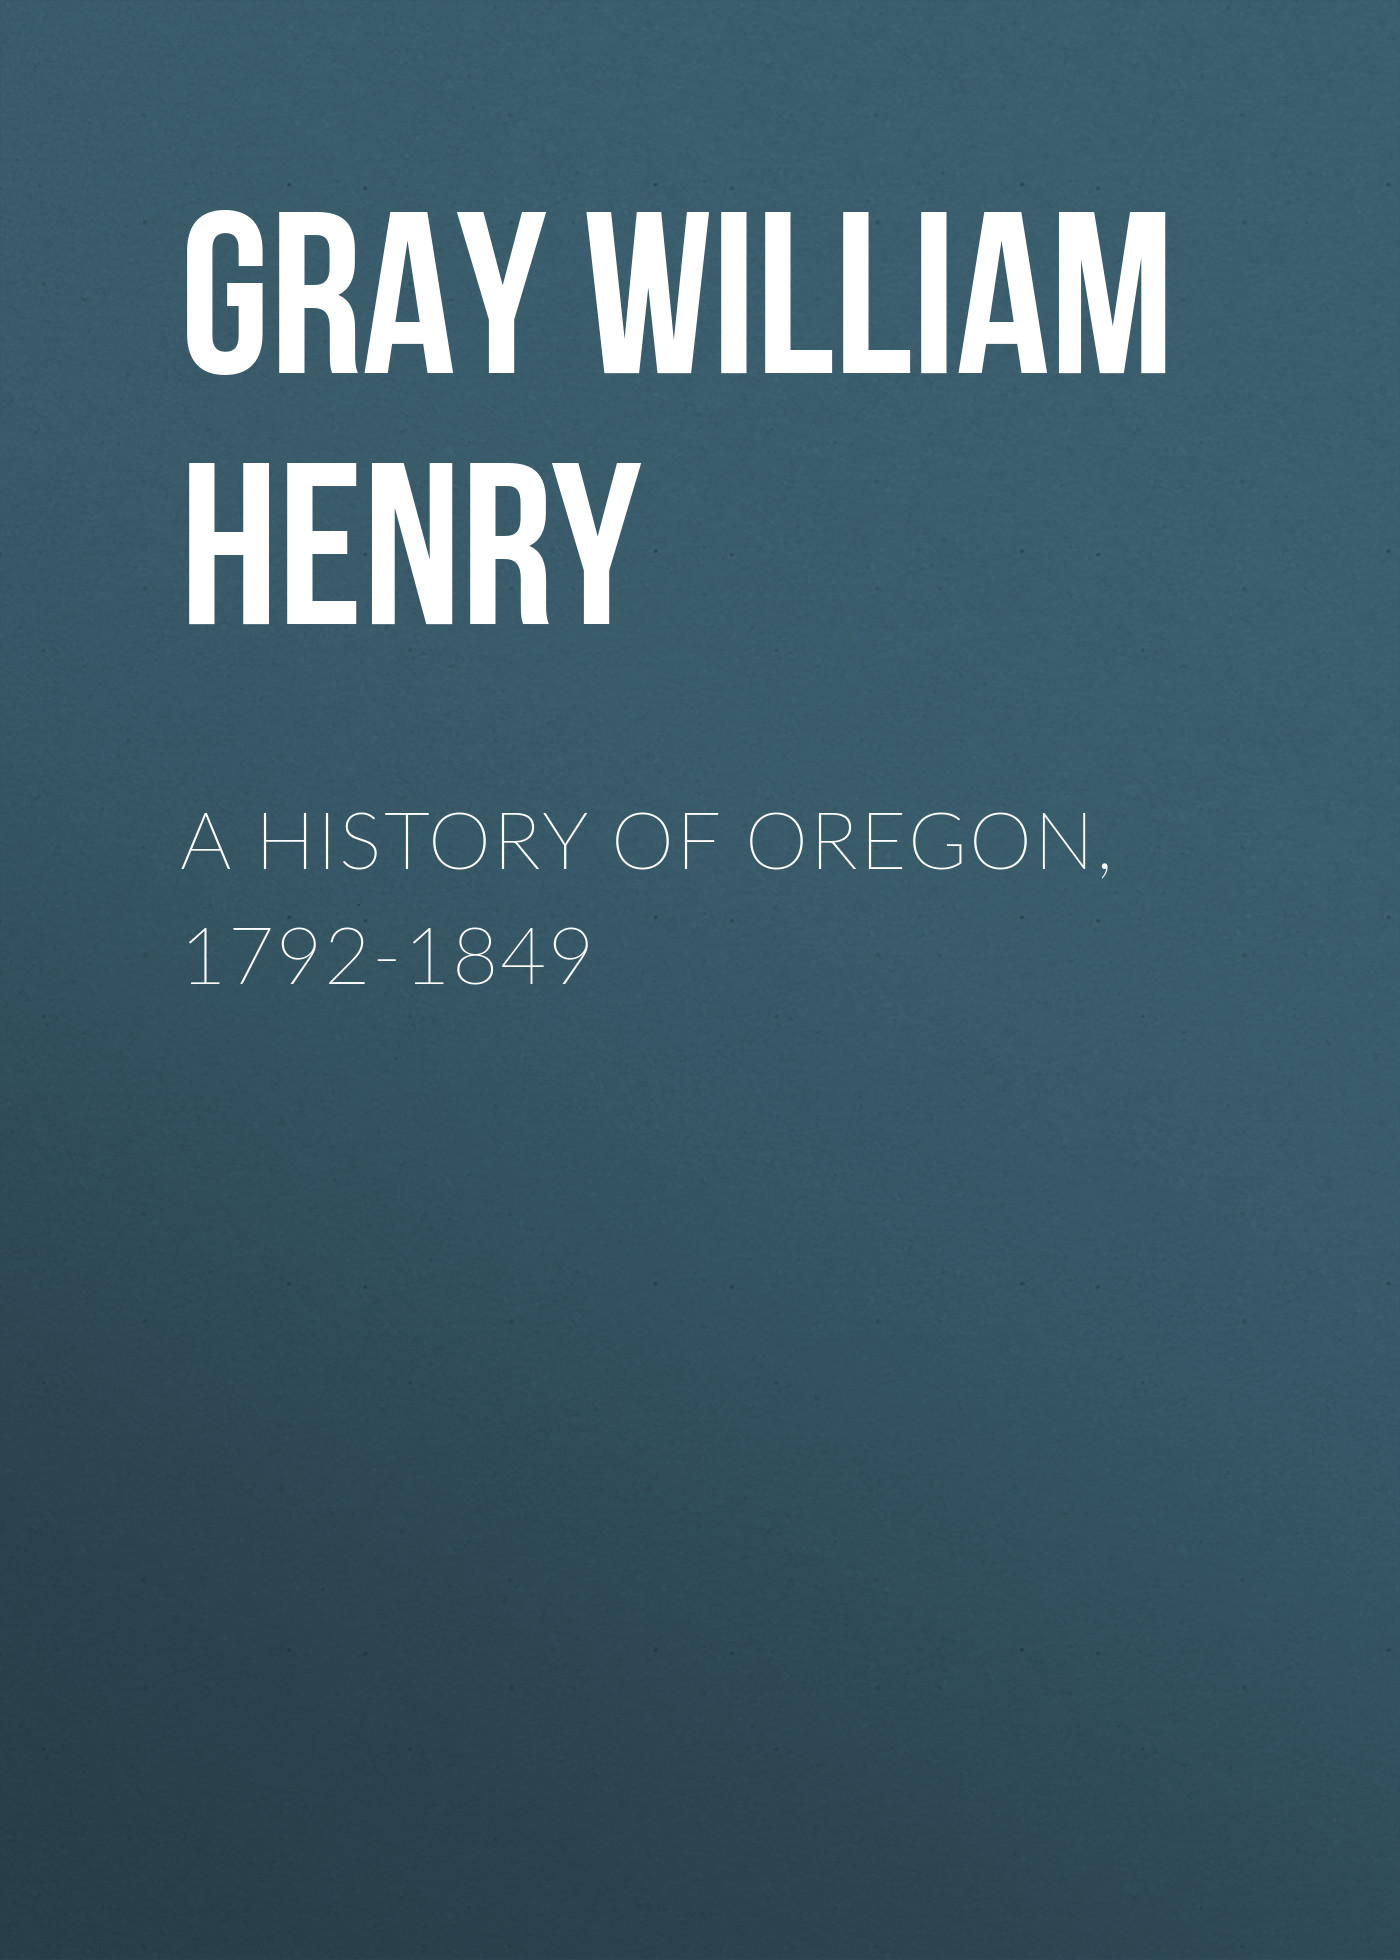 Gray William Henry A History of Oregon 1792-1849